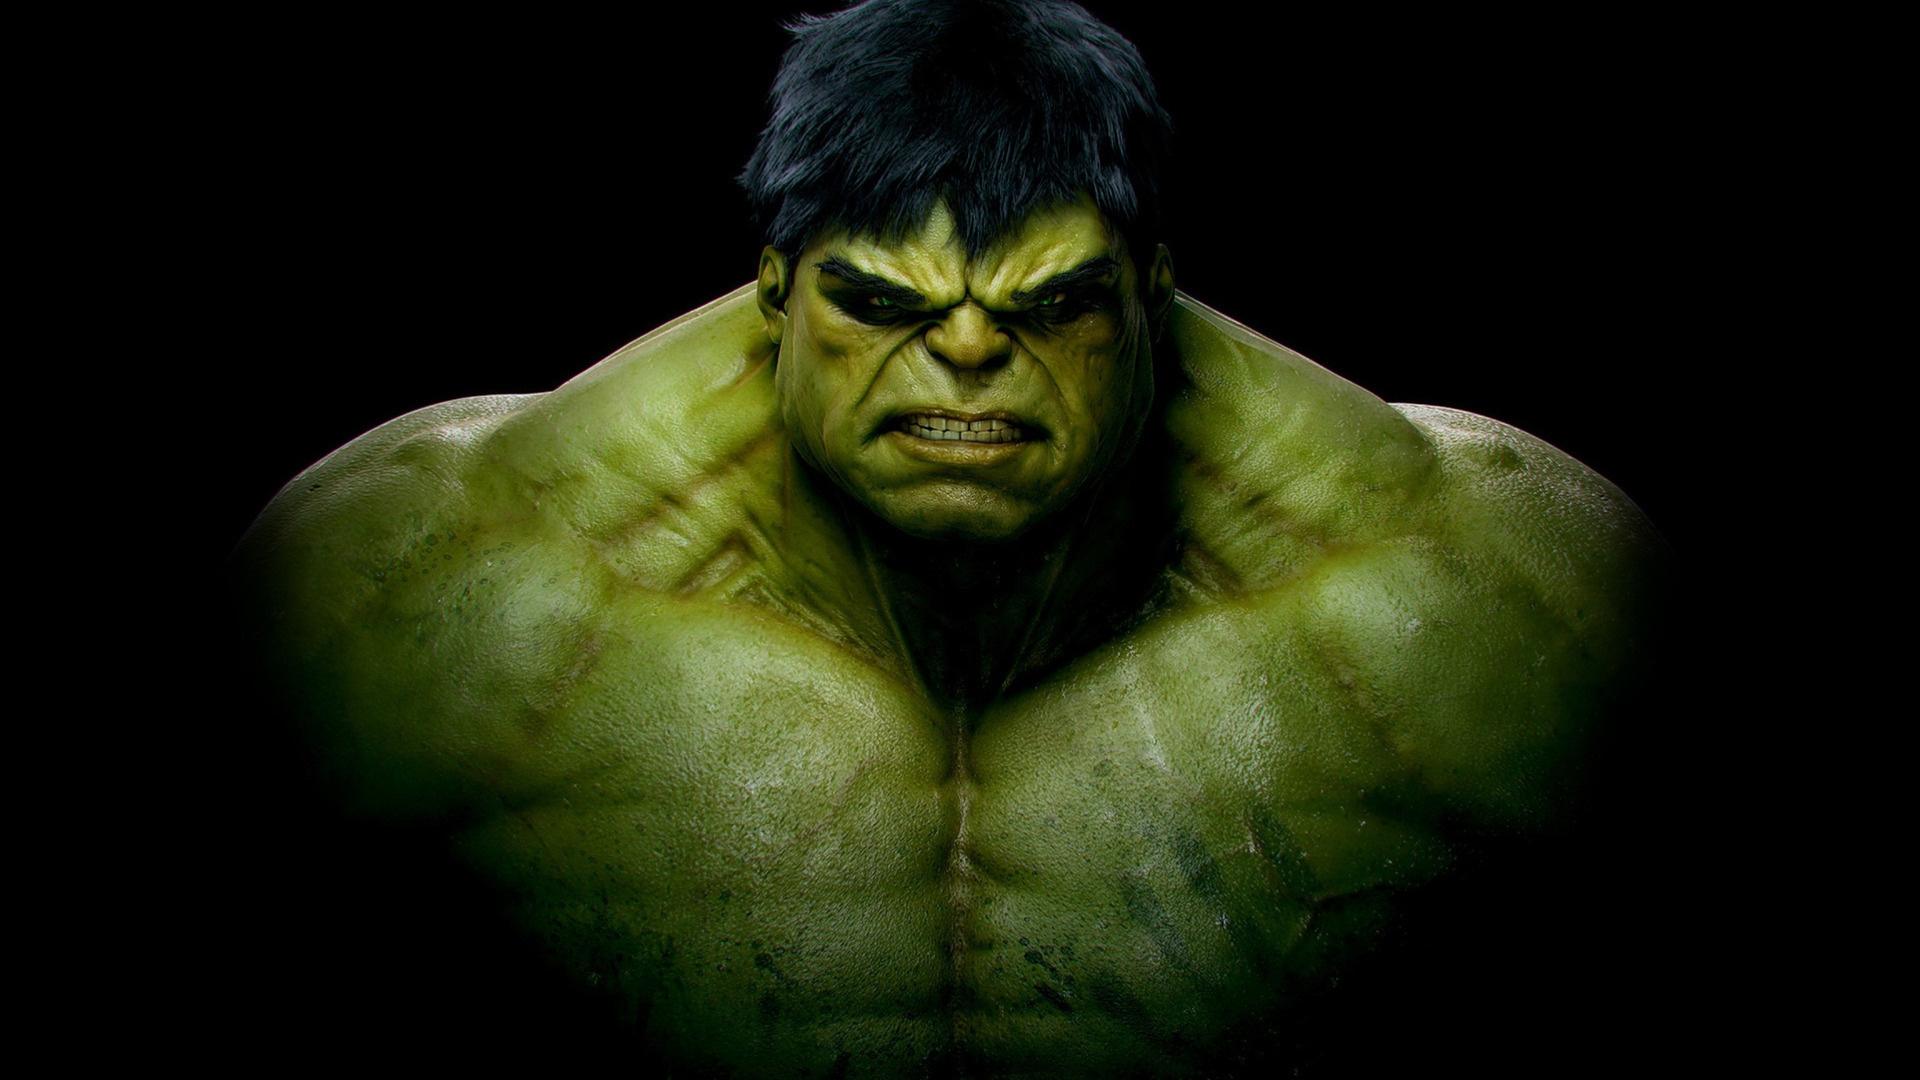 THE INCREDIBLE HULK superhero marvel f wallpaper ...